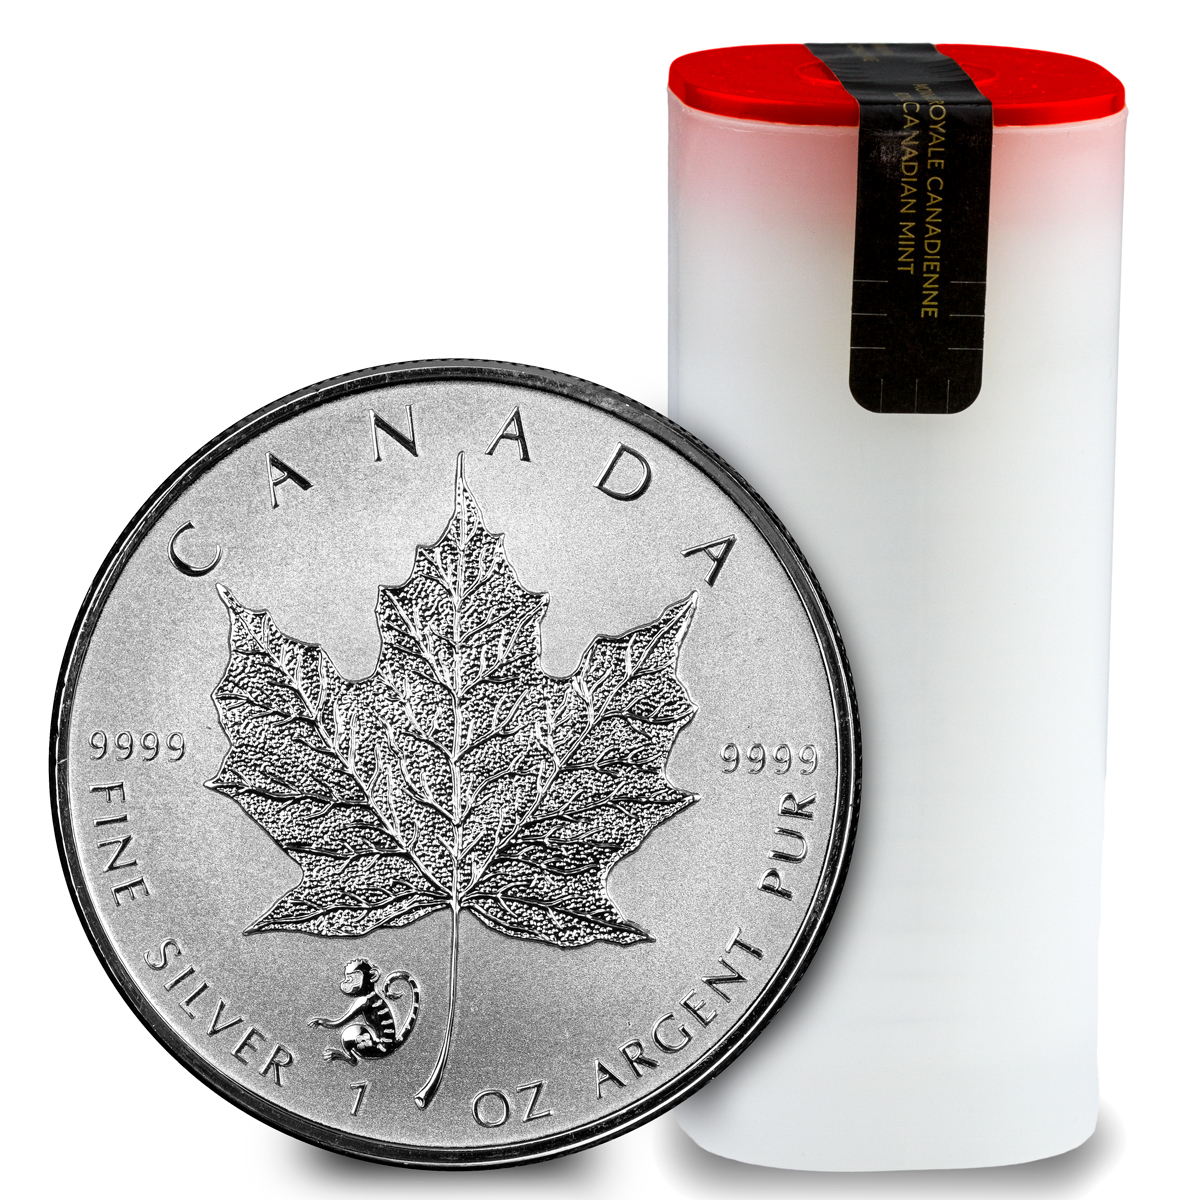 2016 Canada $5 1 oz. Reverse Proof Silver Maple Leaf - Lunar Year of the Monkey Privy Mark - Roll of 25 Coins - GEM Reverse Proof